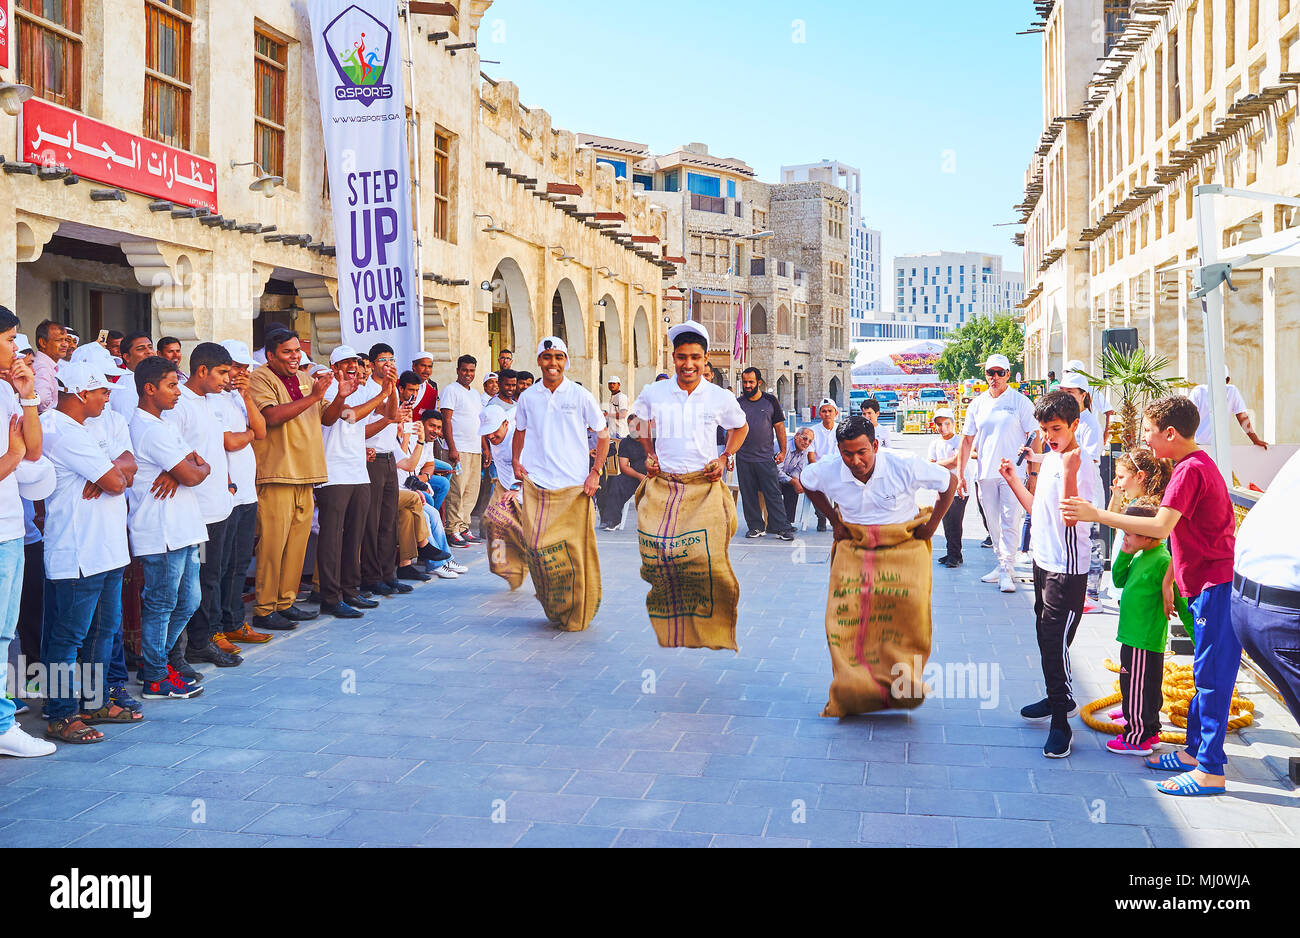 DOHA, QATAR - FEBRUARY 13, 2018: The  sack race in street of Souq Waqif - people celebrate the Day of Sport, playing fun active games, on February 13  - Stock Image